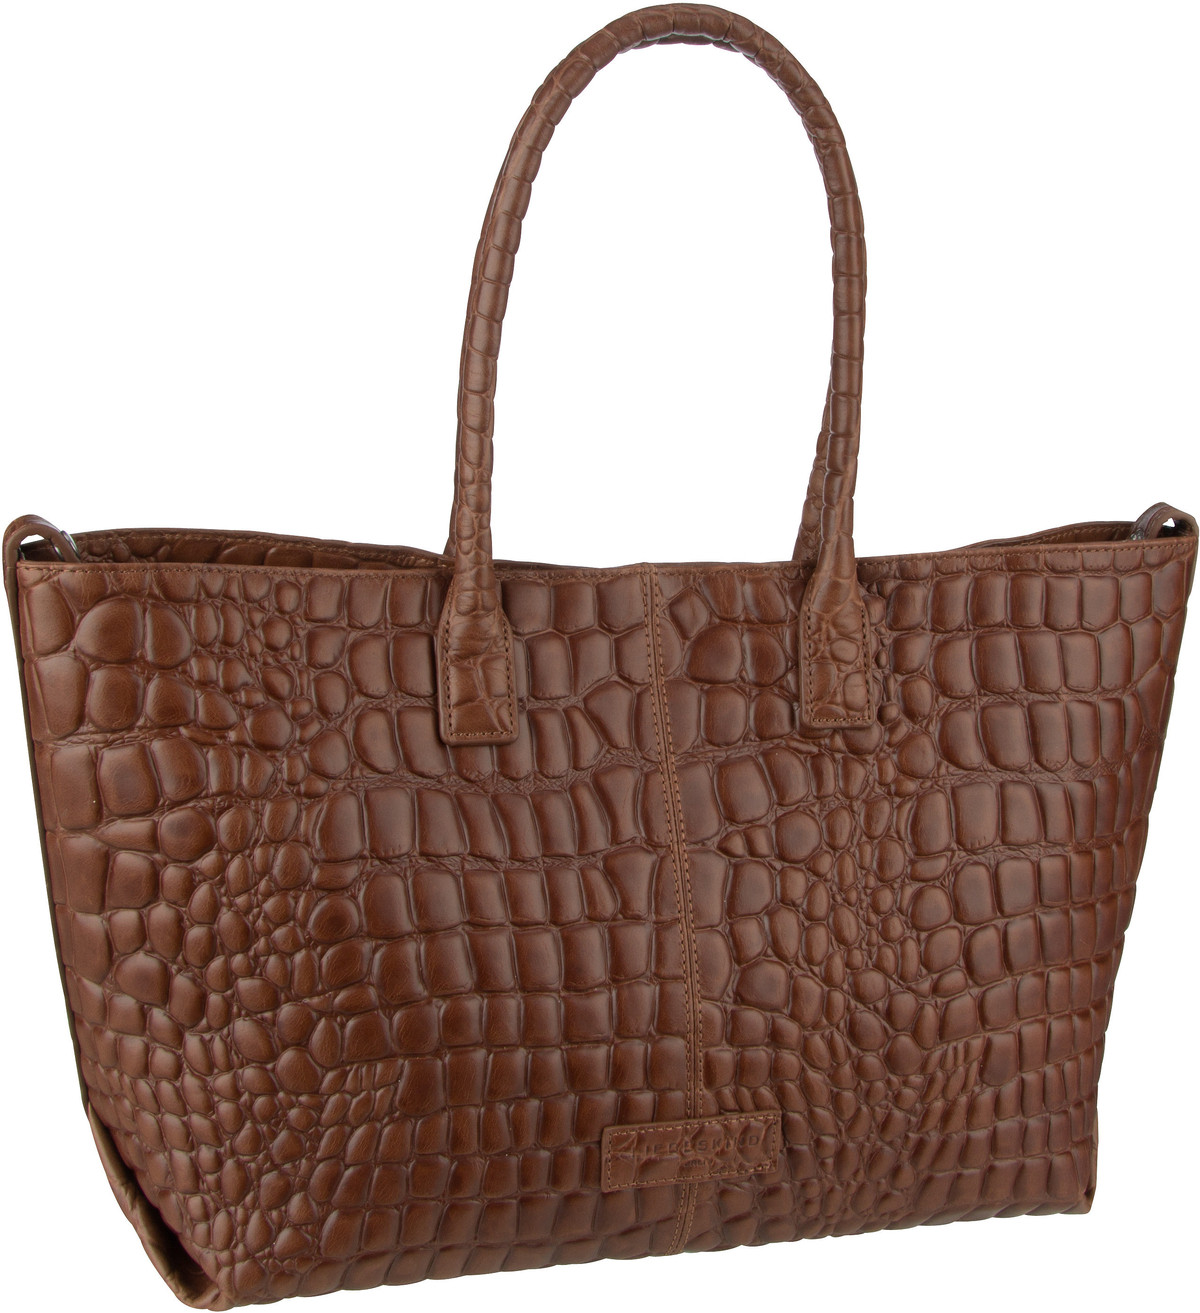 Berlin Handtasche Malibu L.A. Shopper M Medium Brown